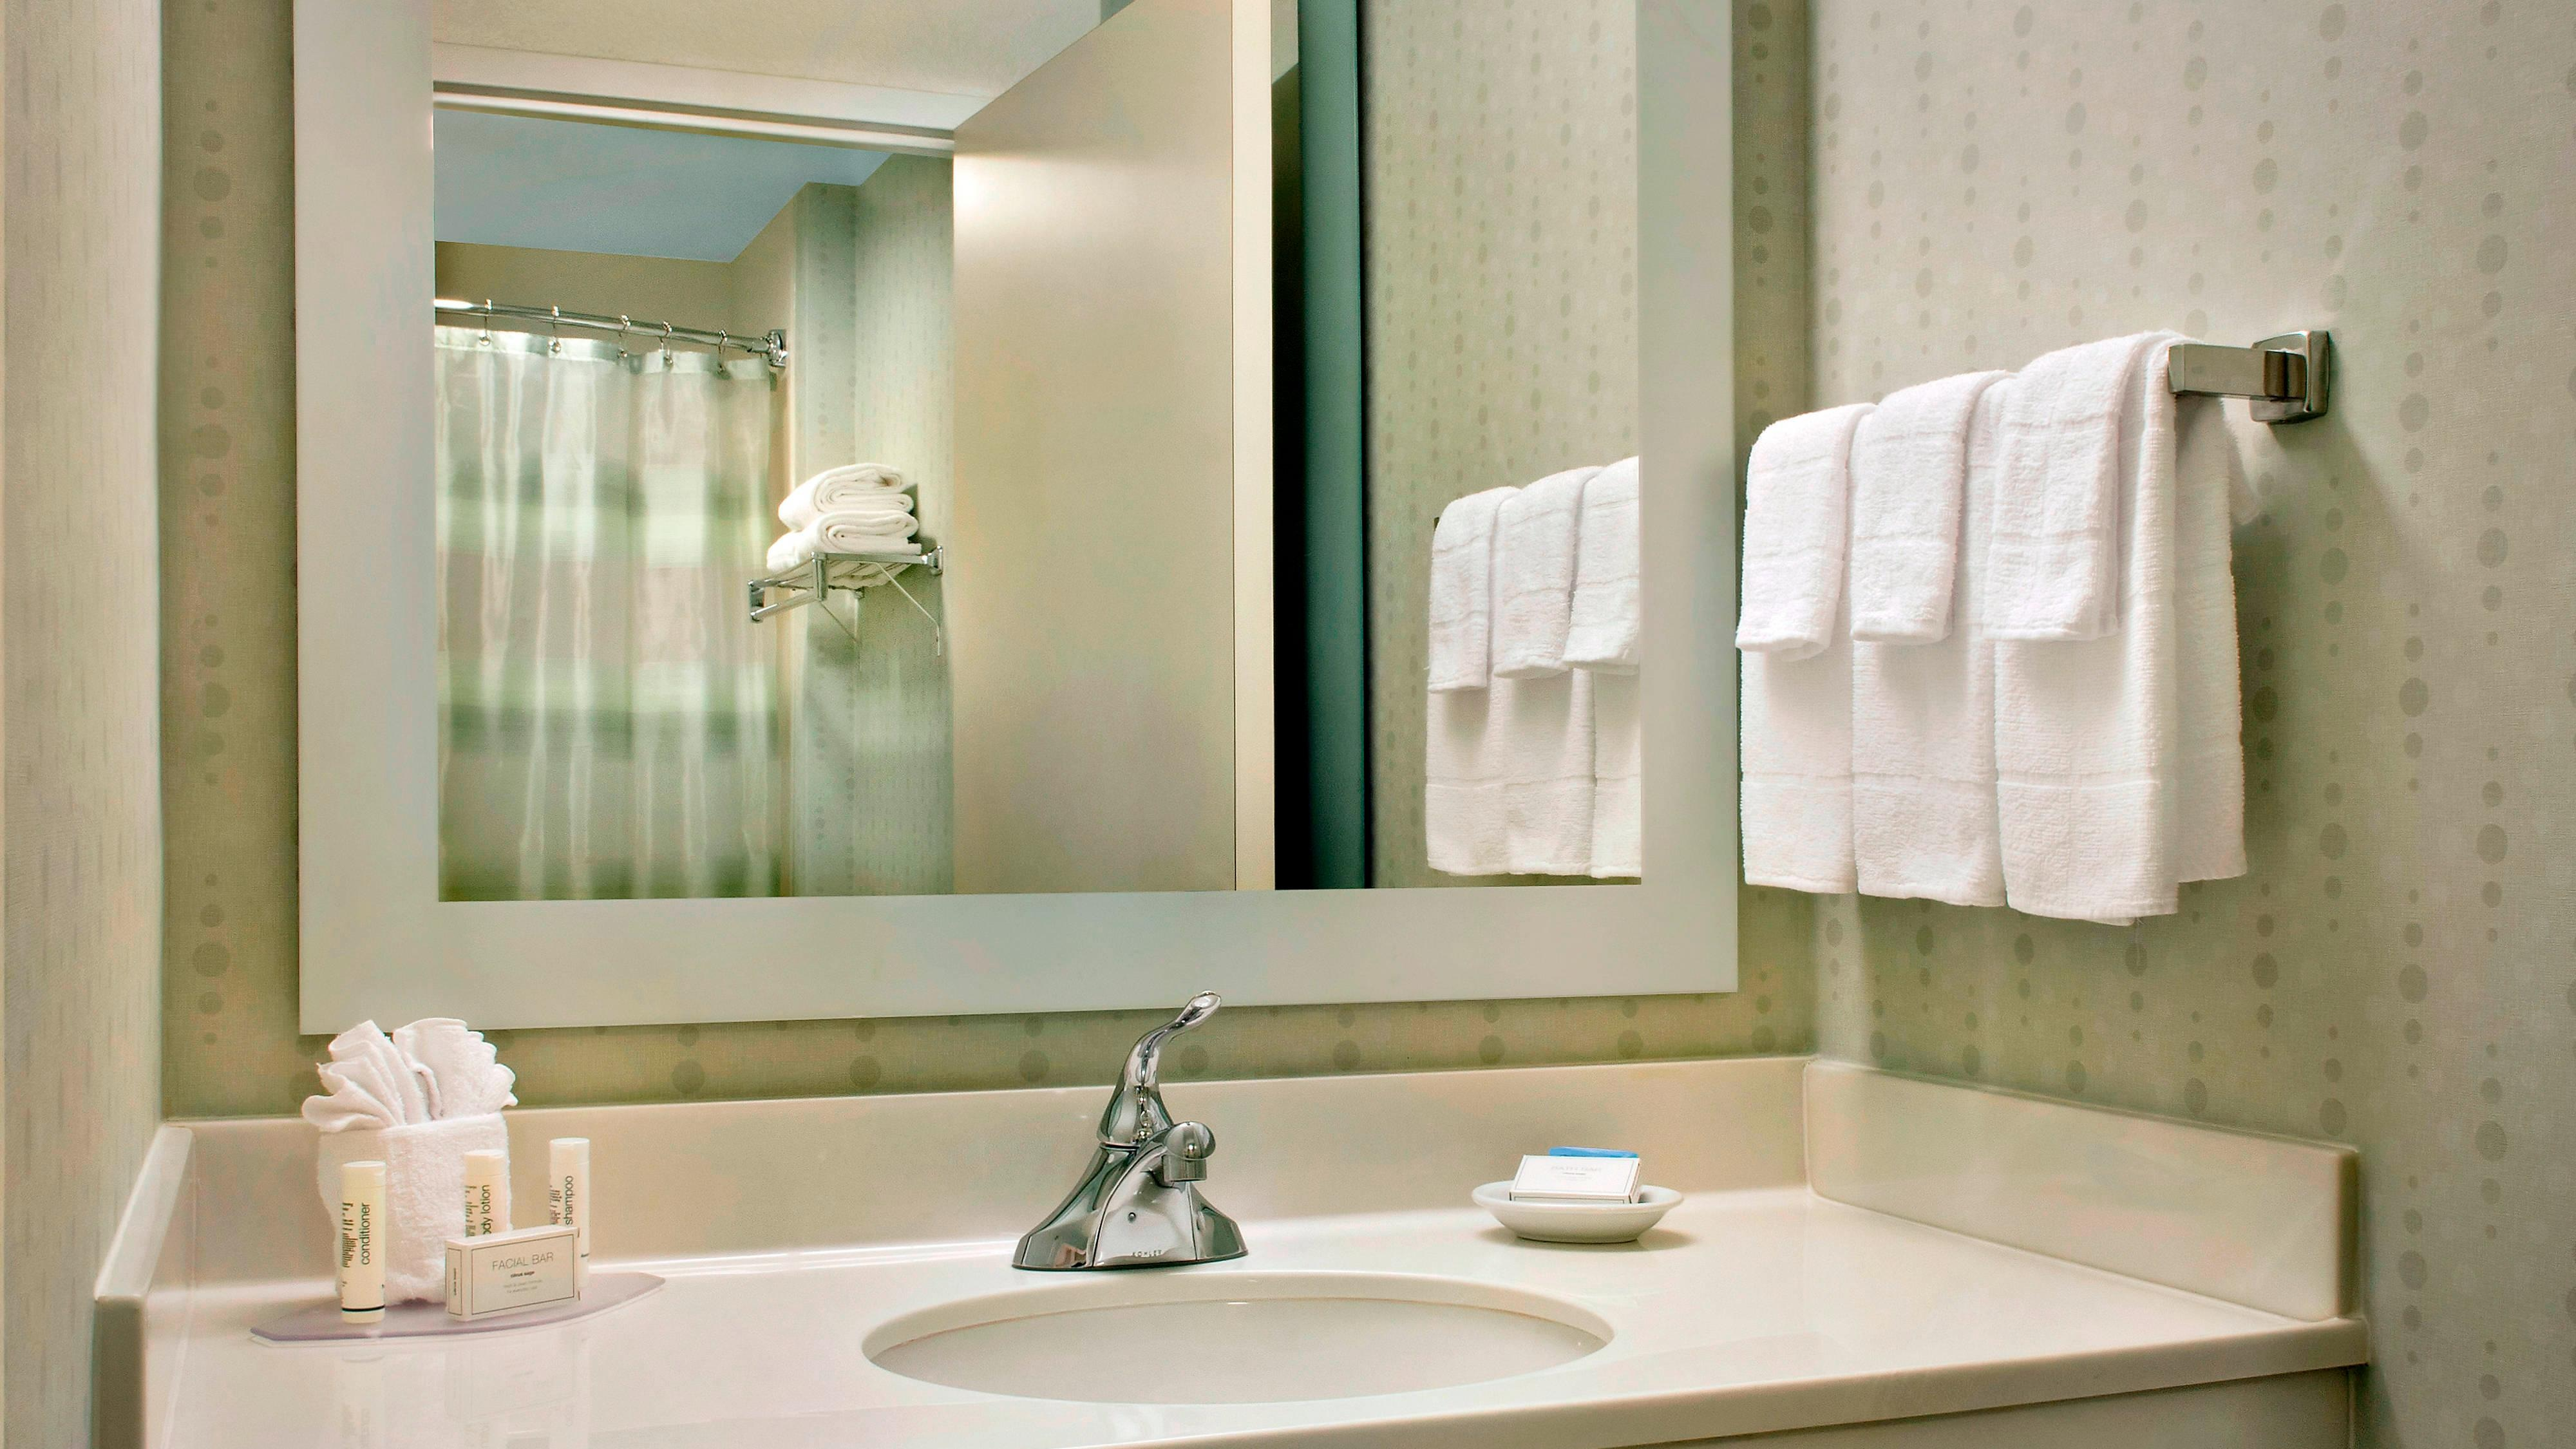 Danbury CT Hotels - Bathroom Vanity